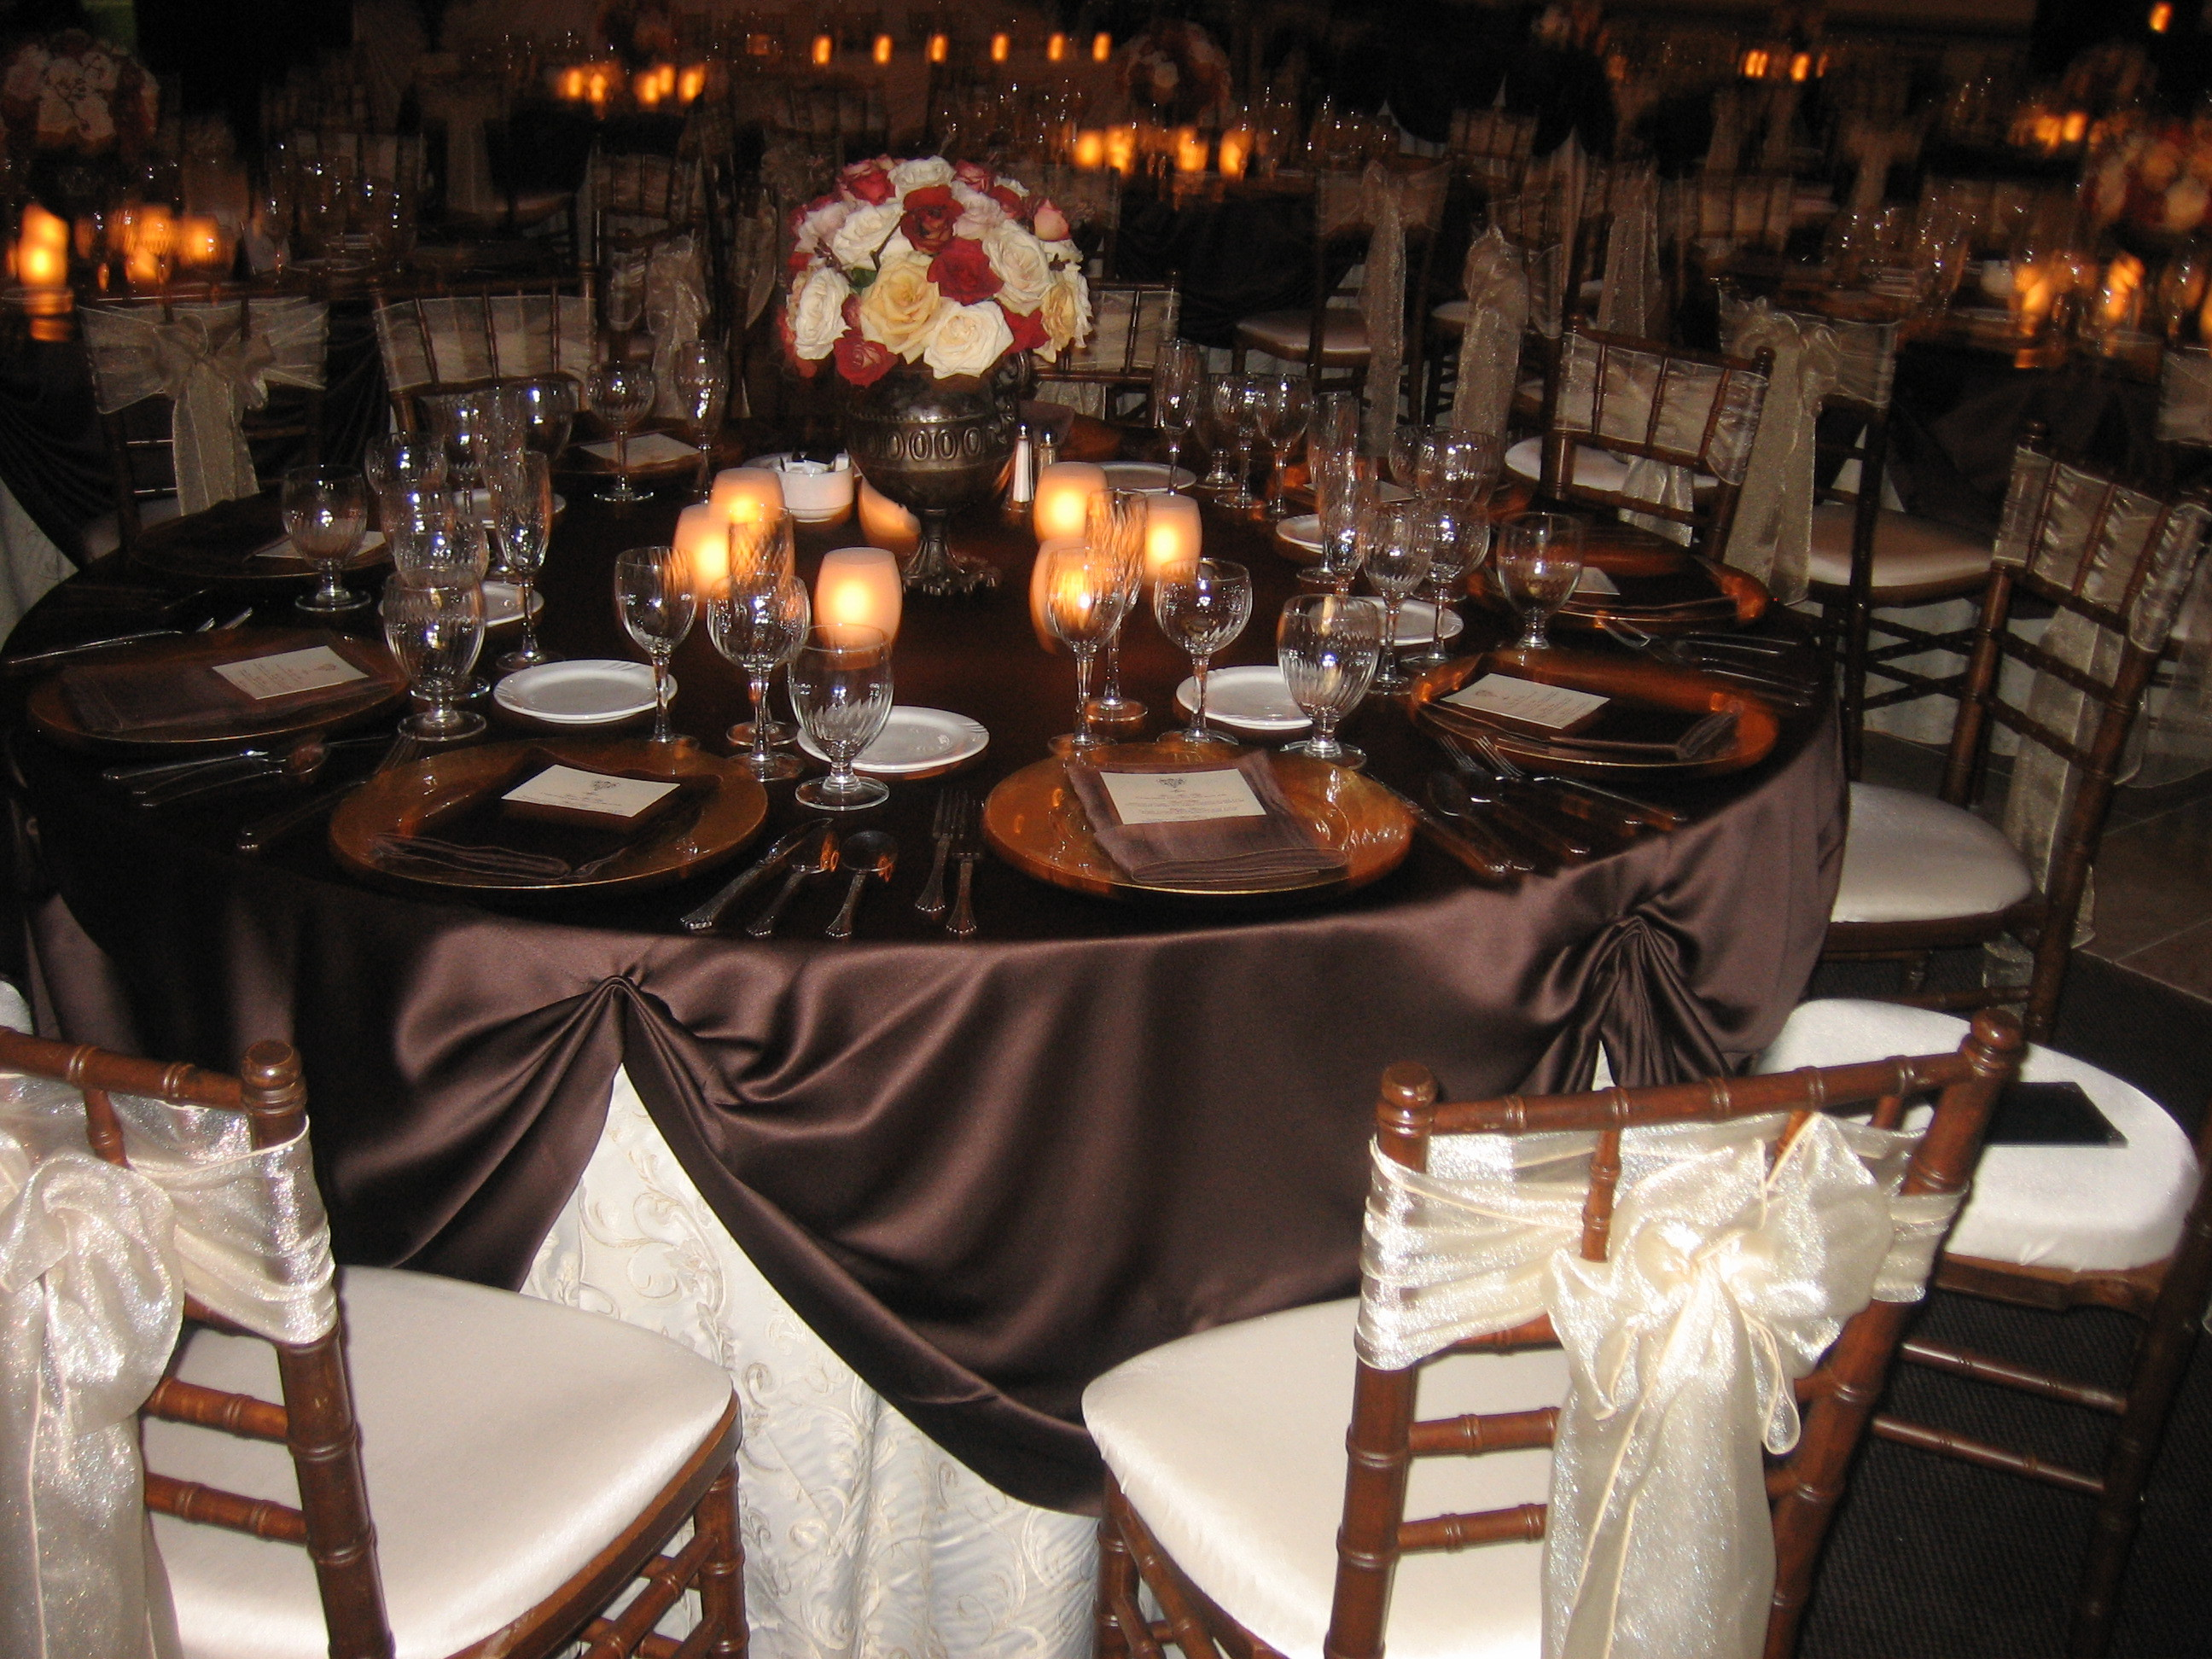 Reception, Flowers & Decor, Registry, ivory, orange, pink, brown, gold, Centerpieces, Candles, Place Settings, Flowers, Roses, Wedding, Table, Chocolate, Champagne, Chair, Sash, Organza, Plates, Rust, Antique, Charger, Chivari, Brocade